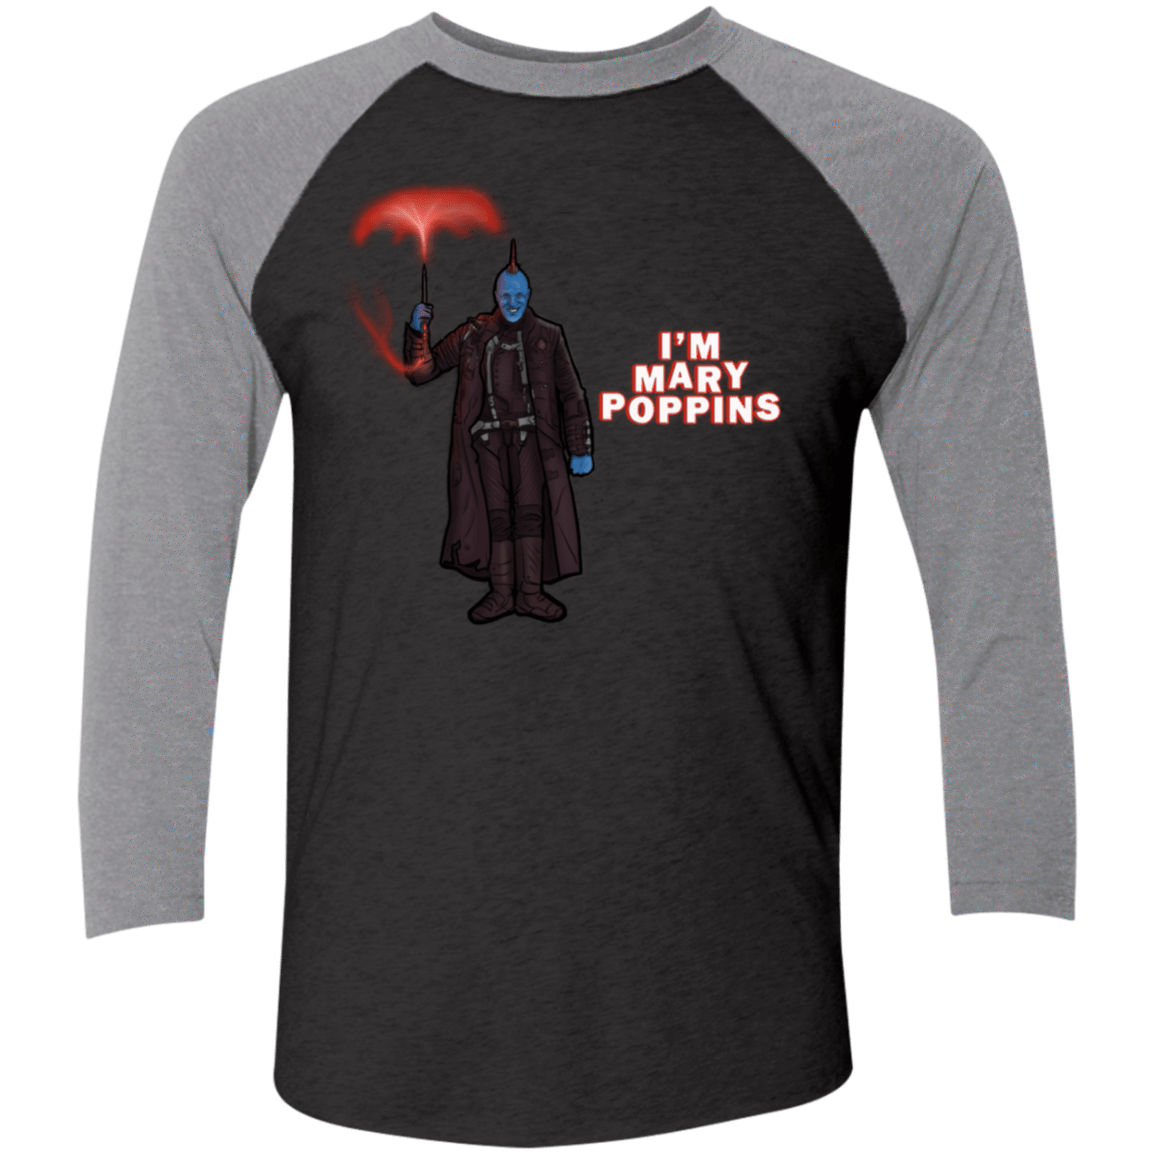 T-Shirts Vintage Black/Premium Heather / X-Small Yondu Poppins Men's Triblend 3/4 Sleeve